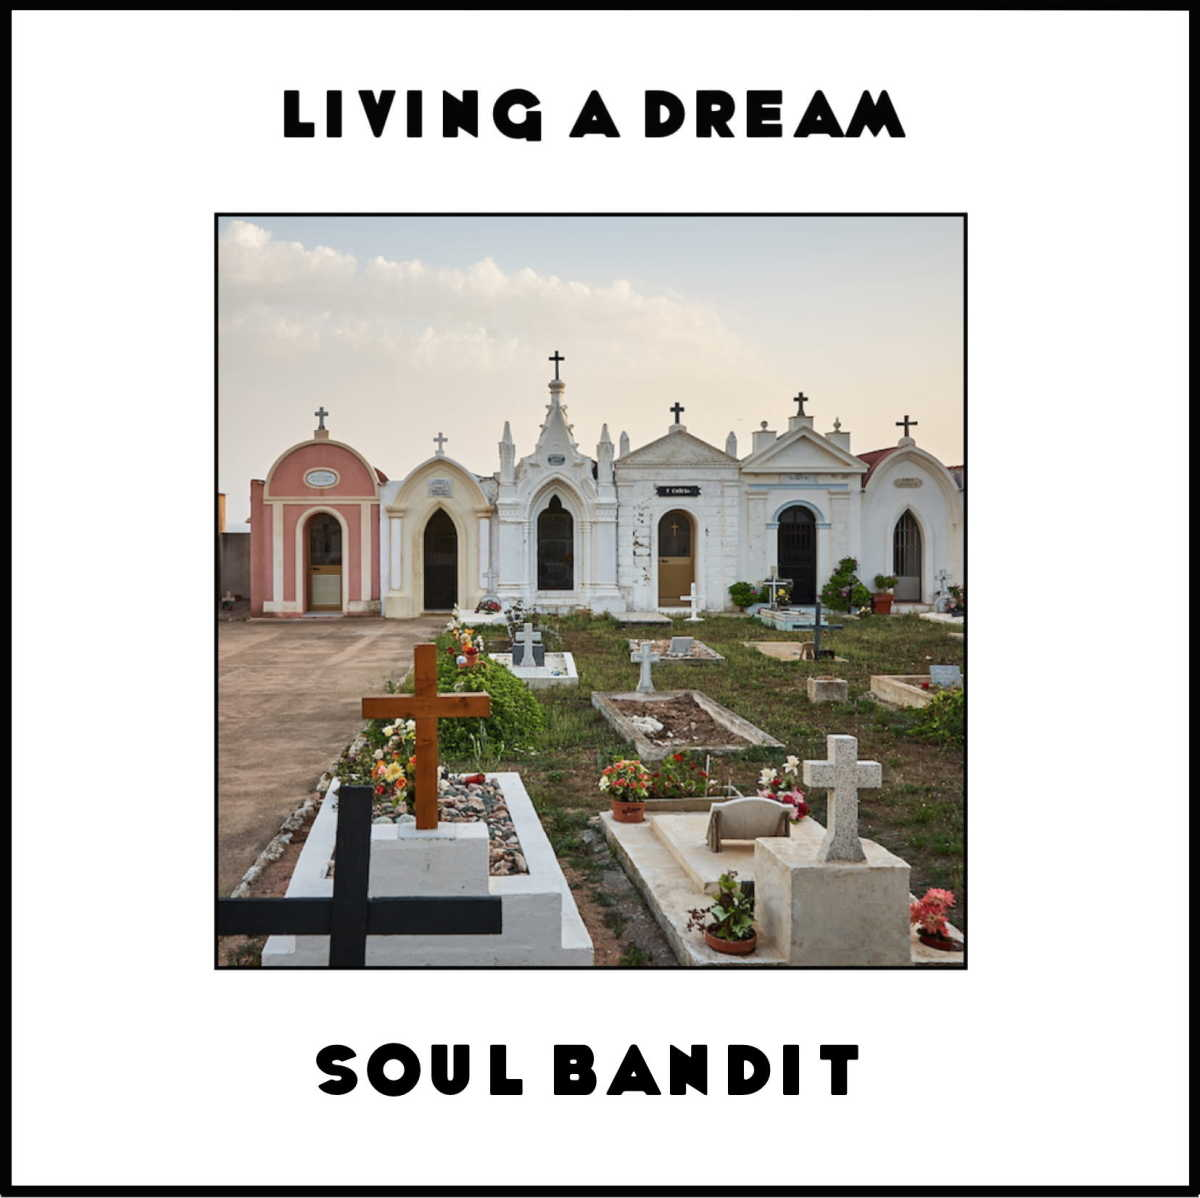 Soul Bandit's first release of 2018.